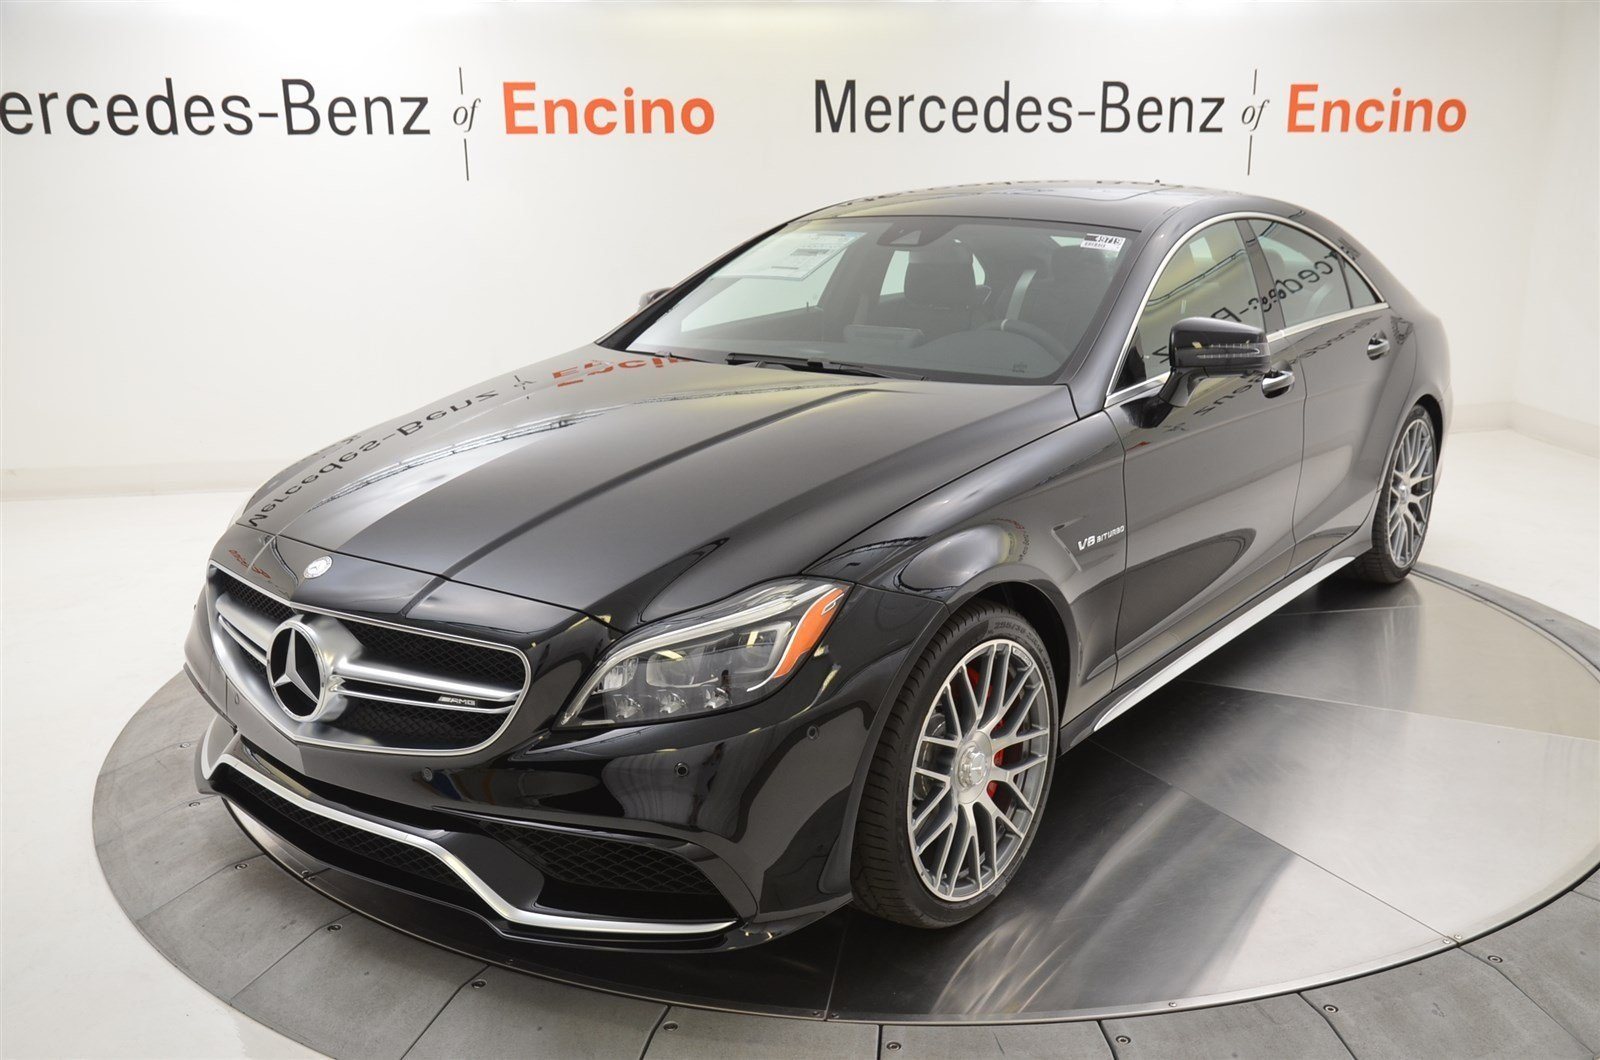 New 2016 Mercedes-Benz CLS AMG® CLS 63 S 4-Door Coupe AWD 4MATIC®